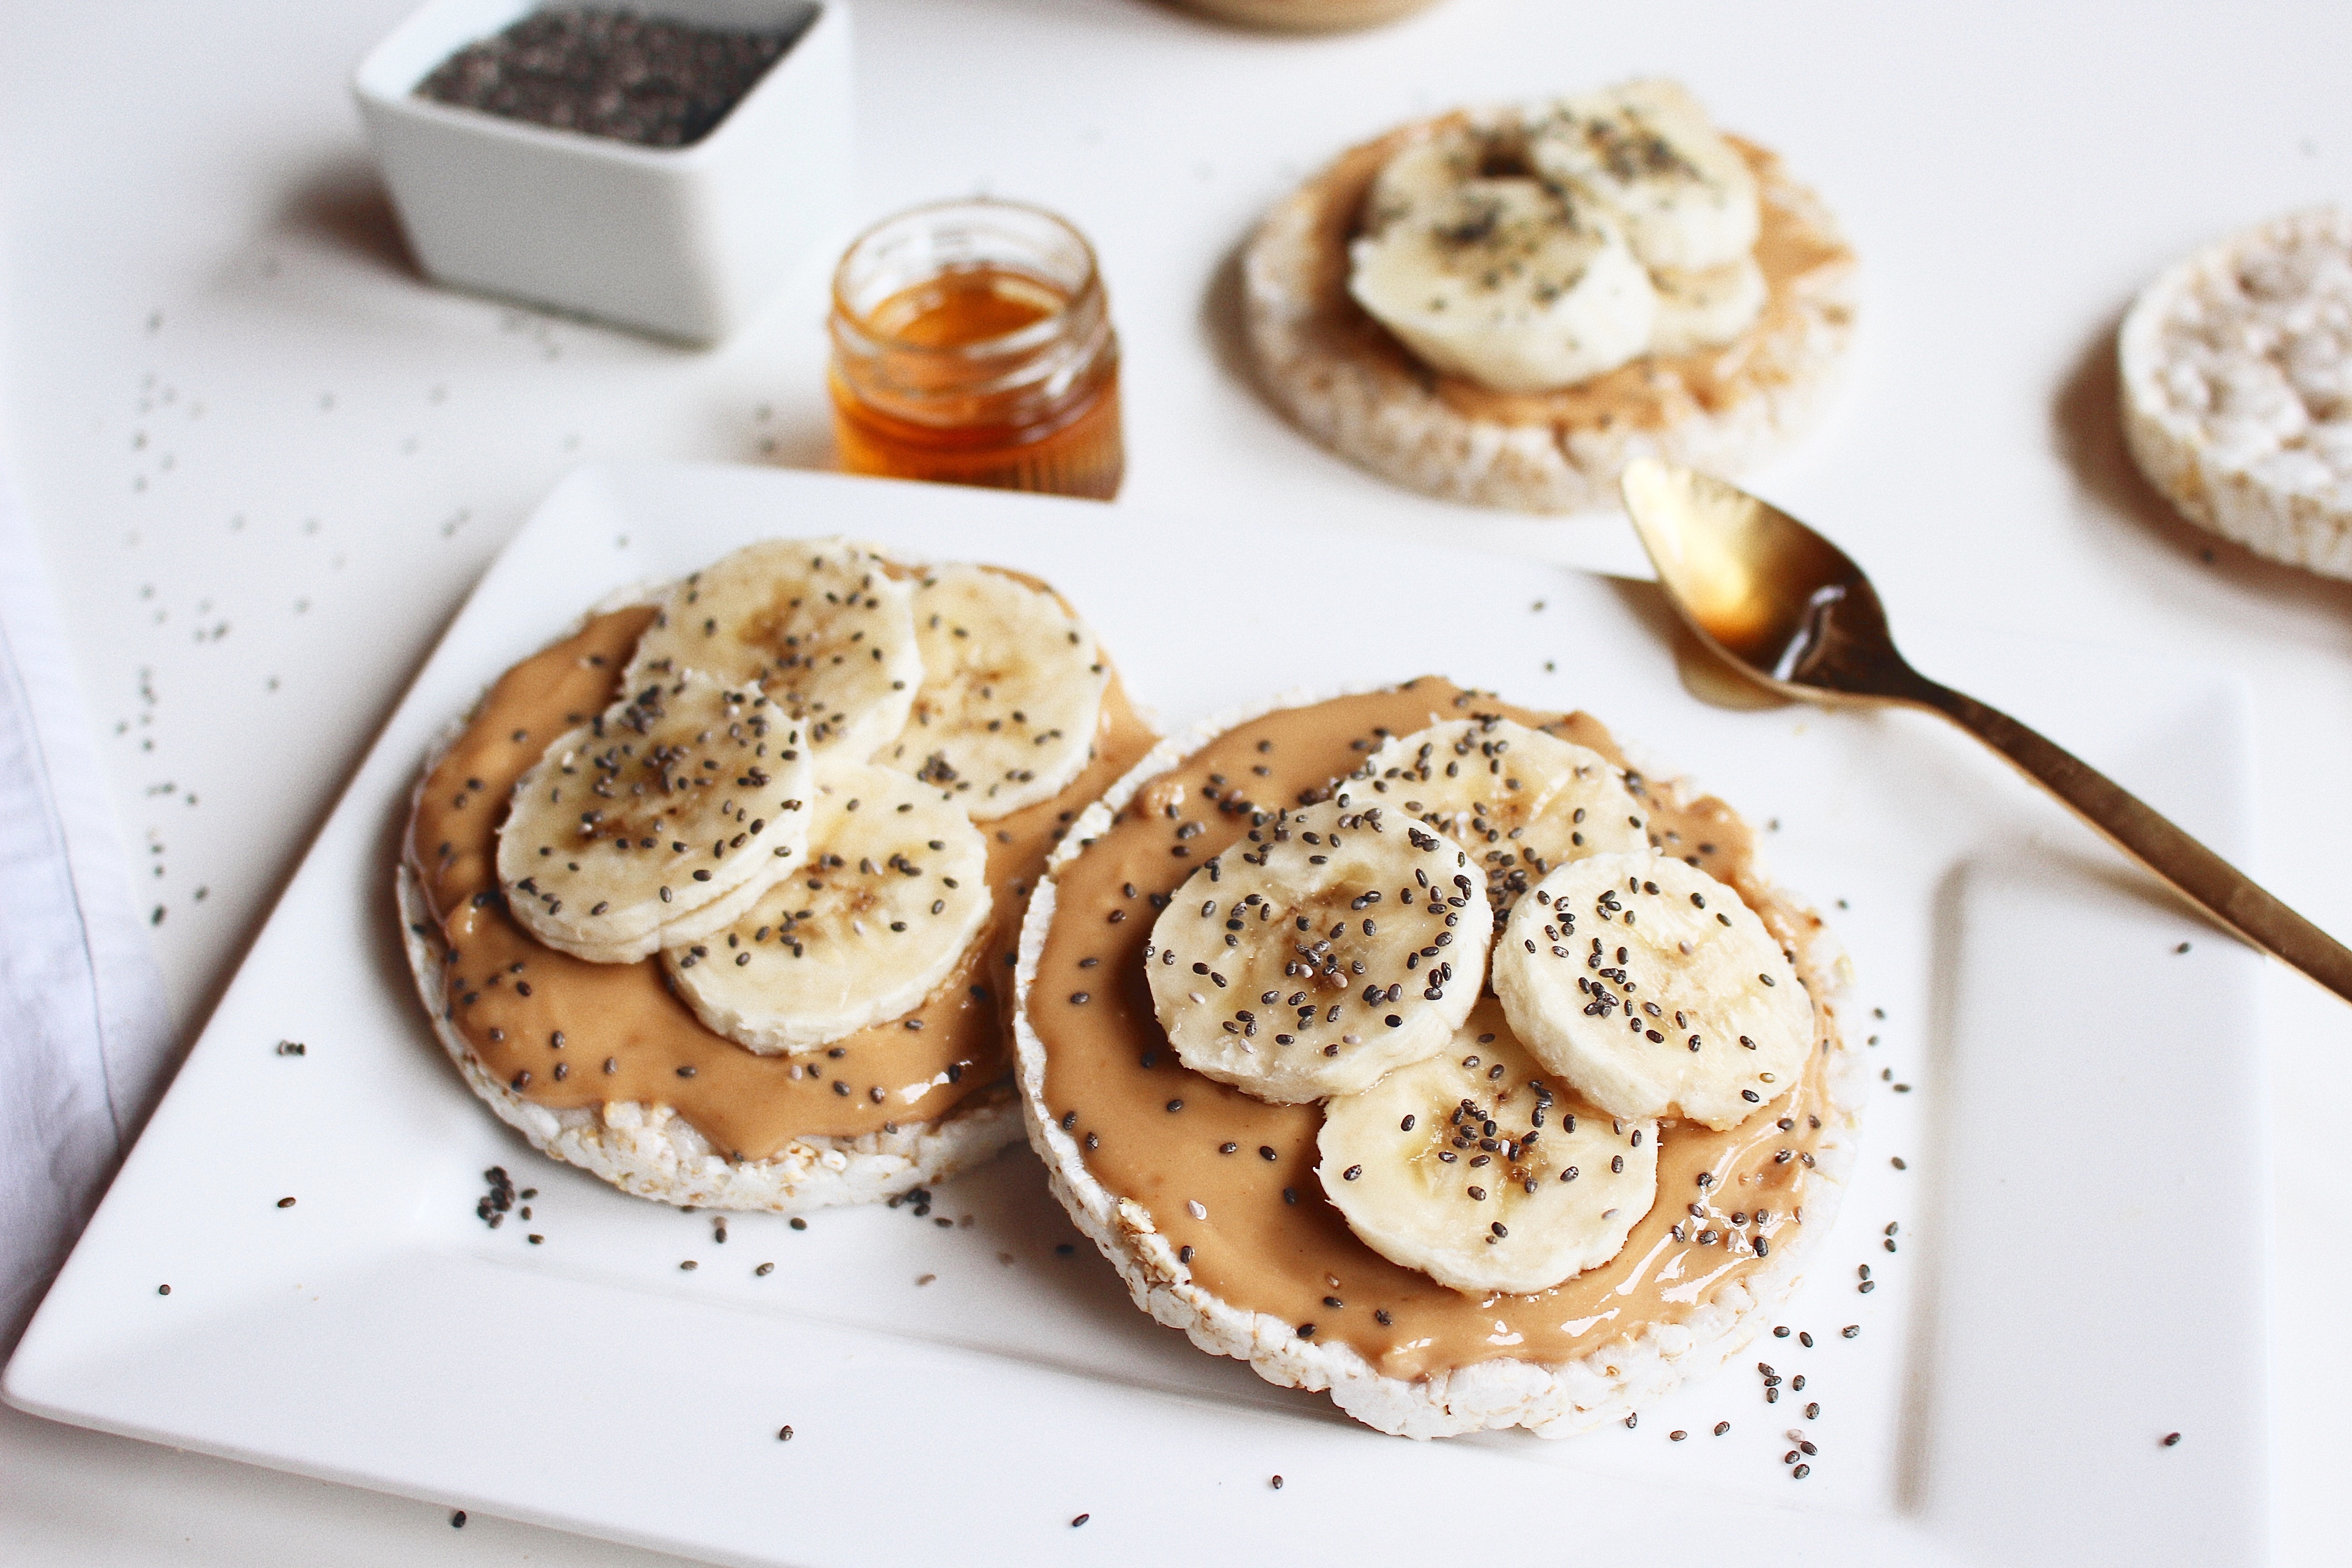 Healthy Snacks With Peanut Butter  Healthy snack Rice cake with peanut butter & banana